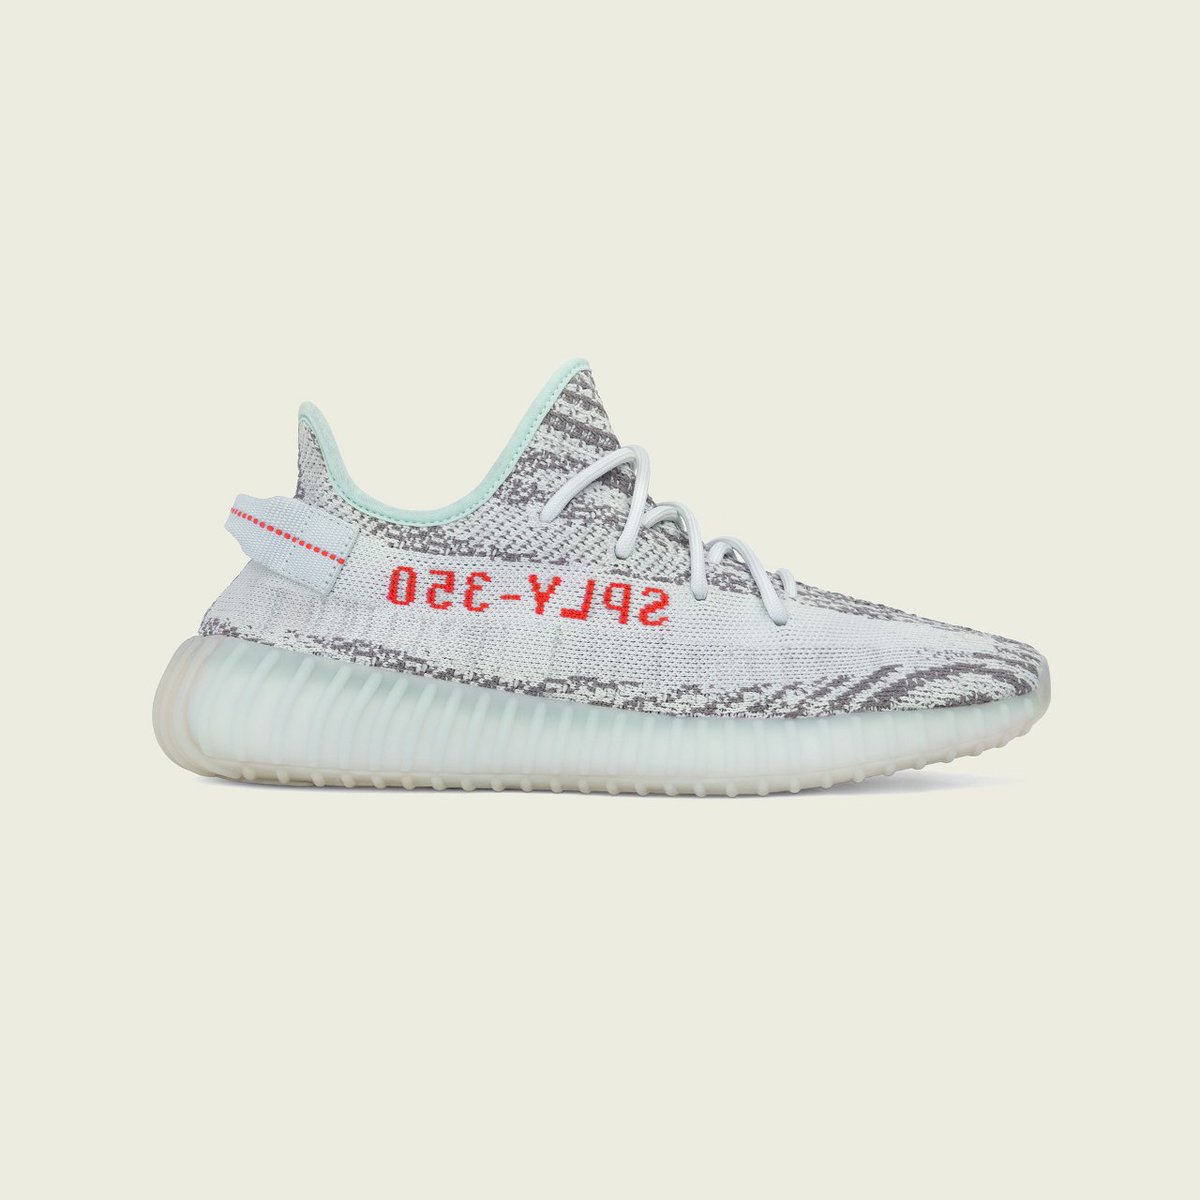 3a0da55c11ba ... get adidas yeezy boost 350 v2 blue tint raffle now open to canadian  residents. locals